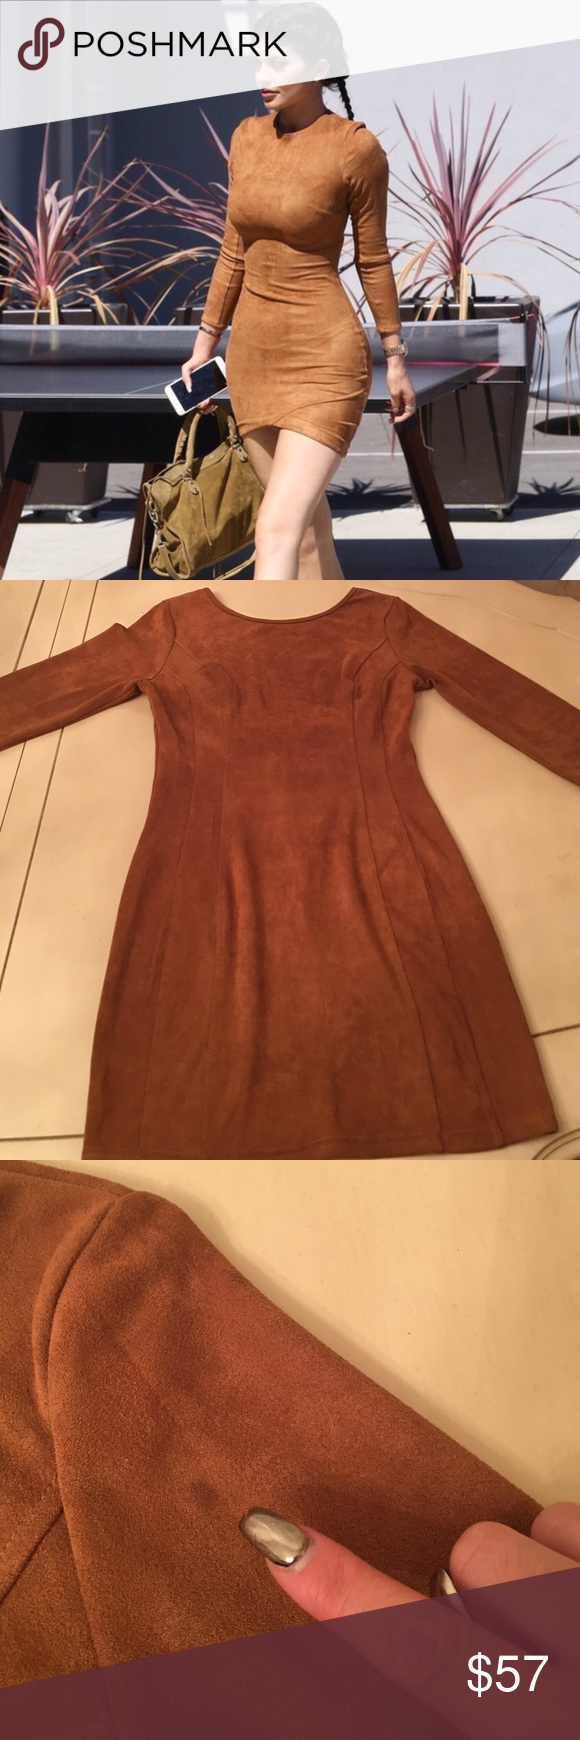 Kylie Faux Suede dress in a medium Kylie Faux Suede Dress in Medium brown. Super cute Kylie Faux Suede dress in chocolate brown. Size medium. Never worn just tried on. Very delicate fabric, small stain may come out, see photo. Hugs your curves. You will love it. Made of Polyester/Spandex. Mini length and deep v back with wiring to keep shape. No Trades🚫 Dresses Mini